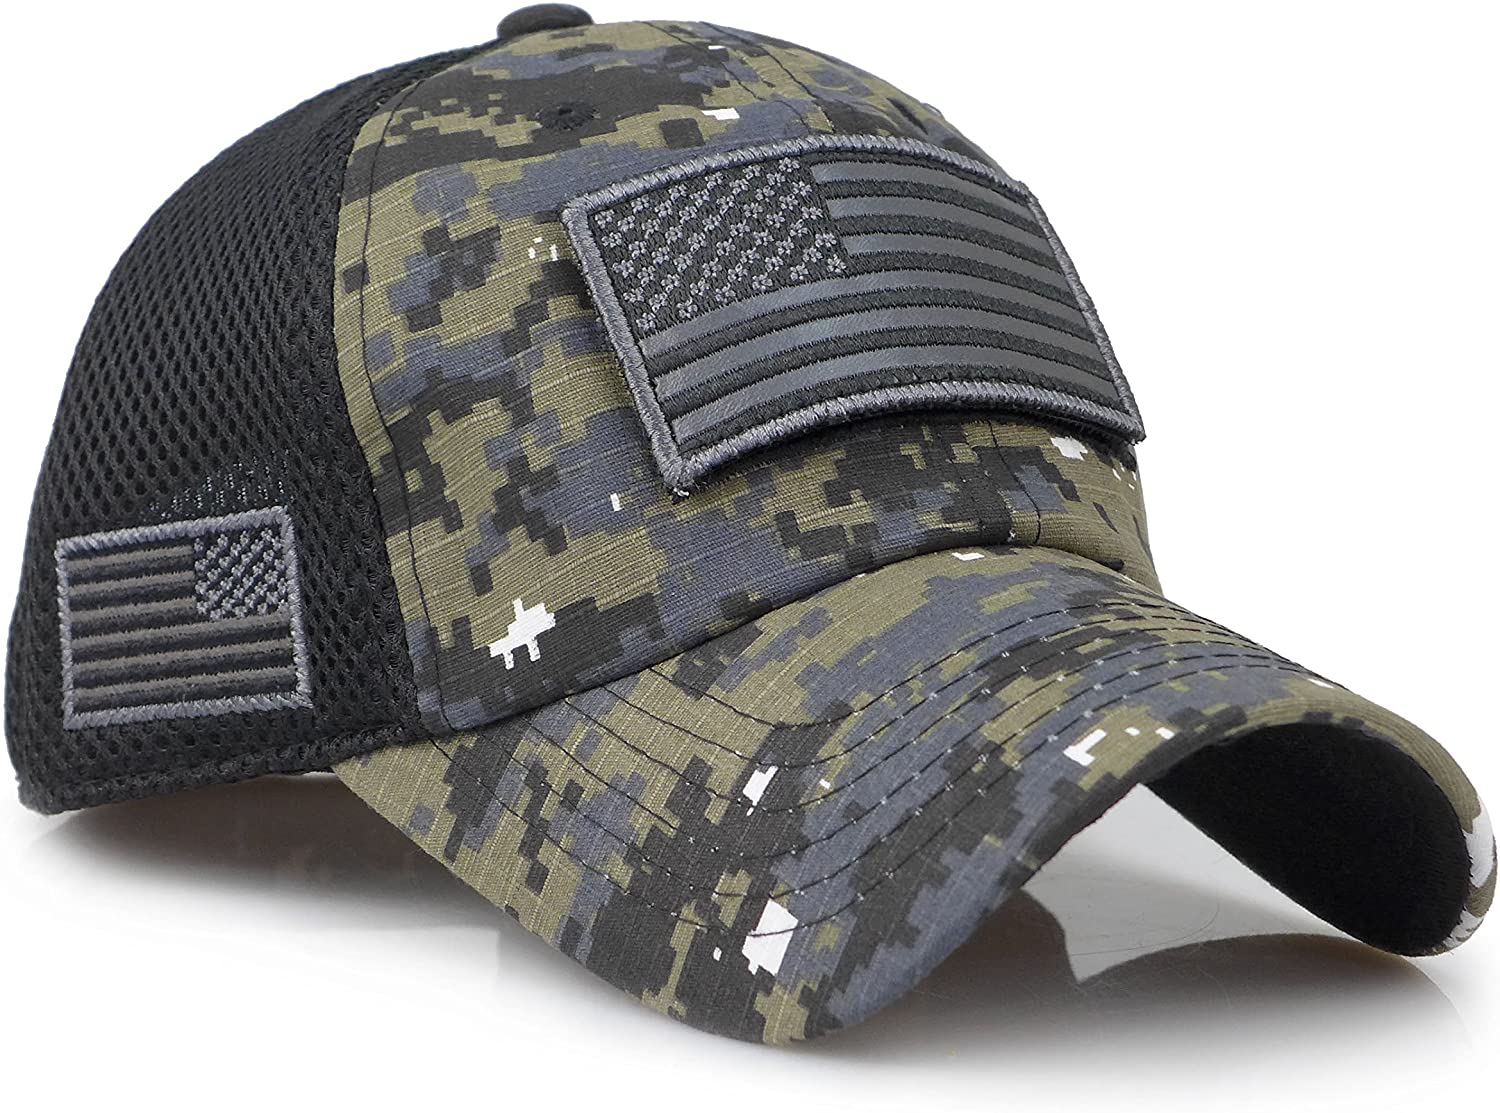 The Sox Market Camouflage Constructed Trucker Special Tactical Operator Forces USA Flag Patch Baseball Cap